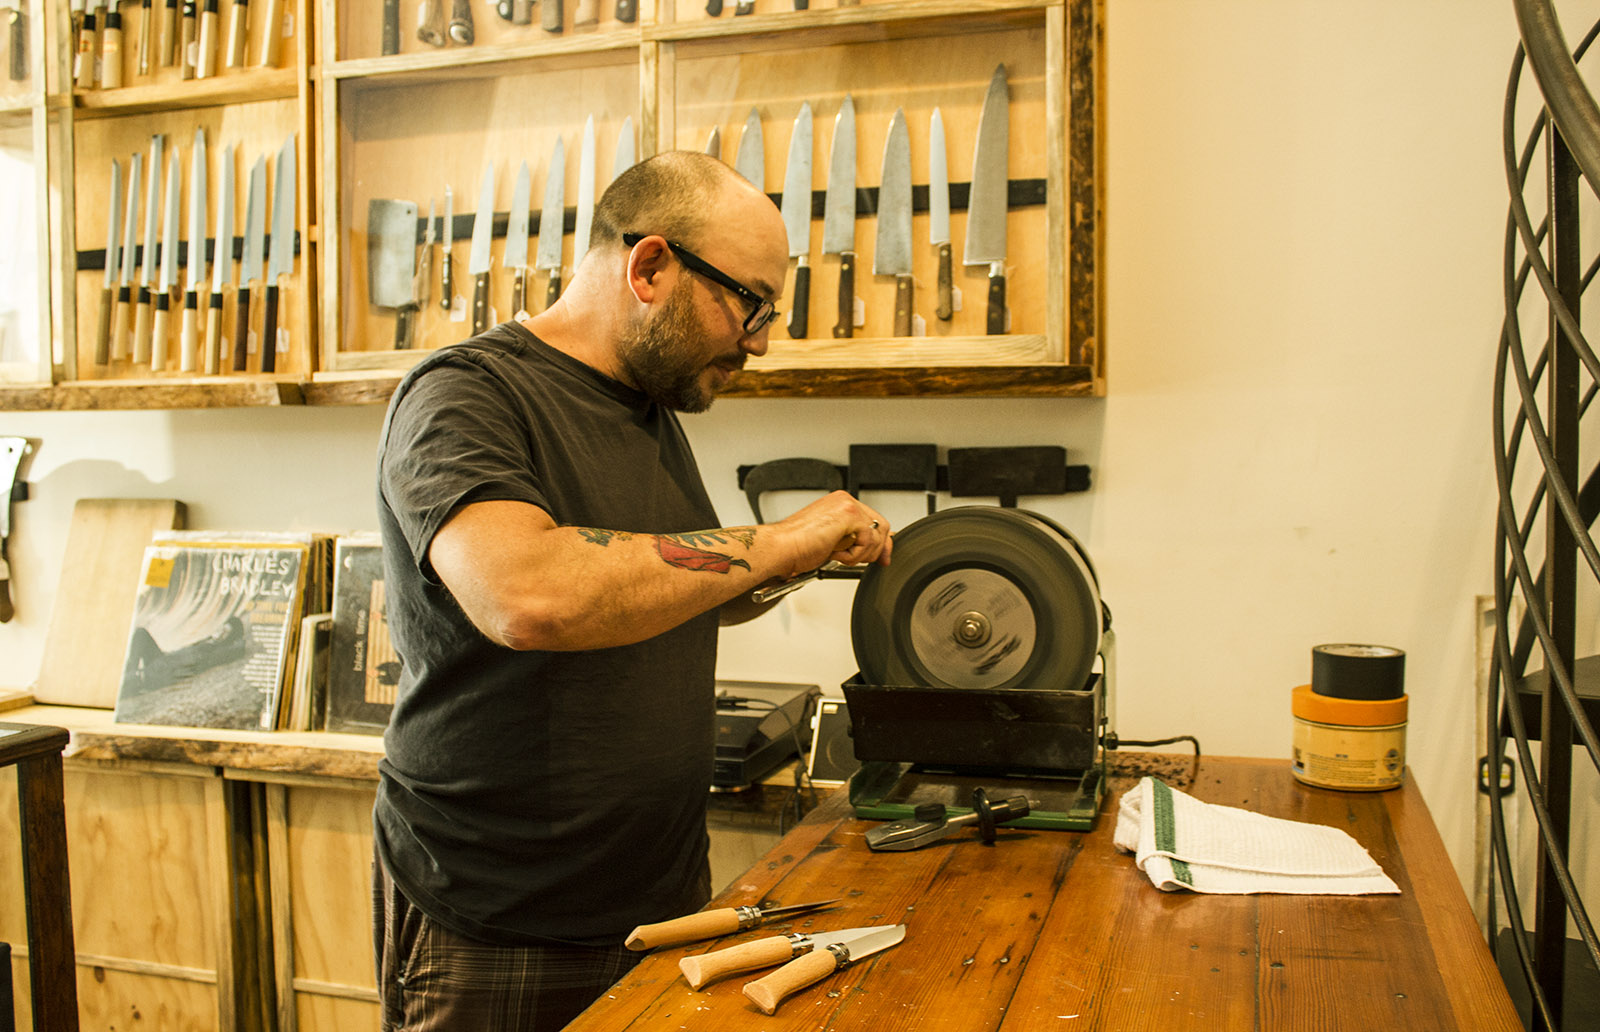 In tough small business climate, specialty knife shop expands